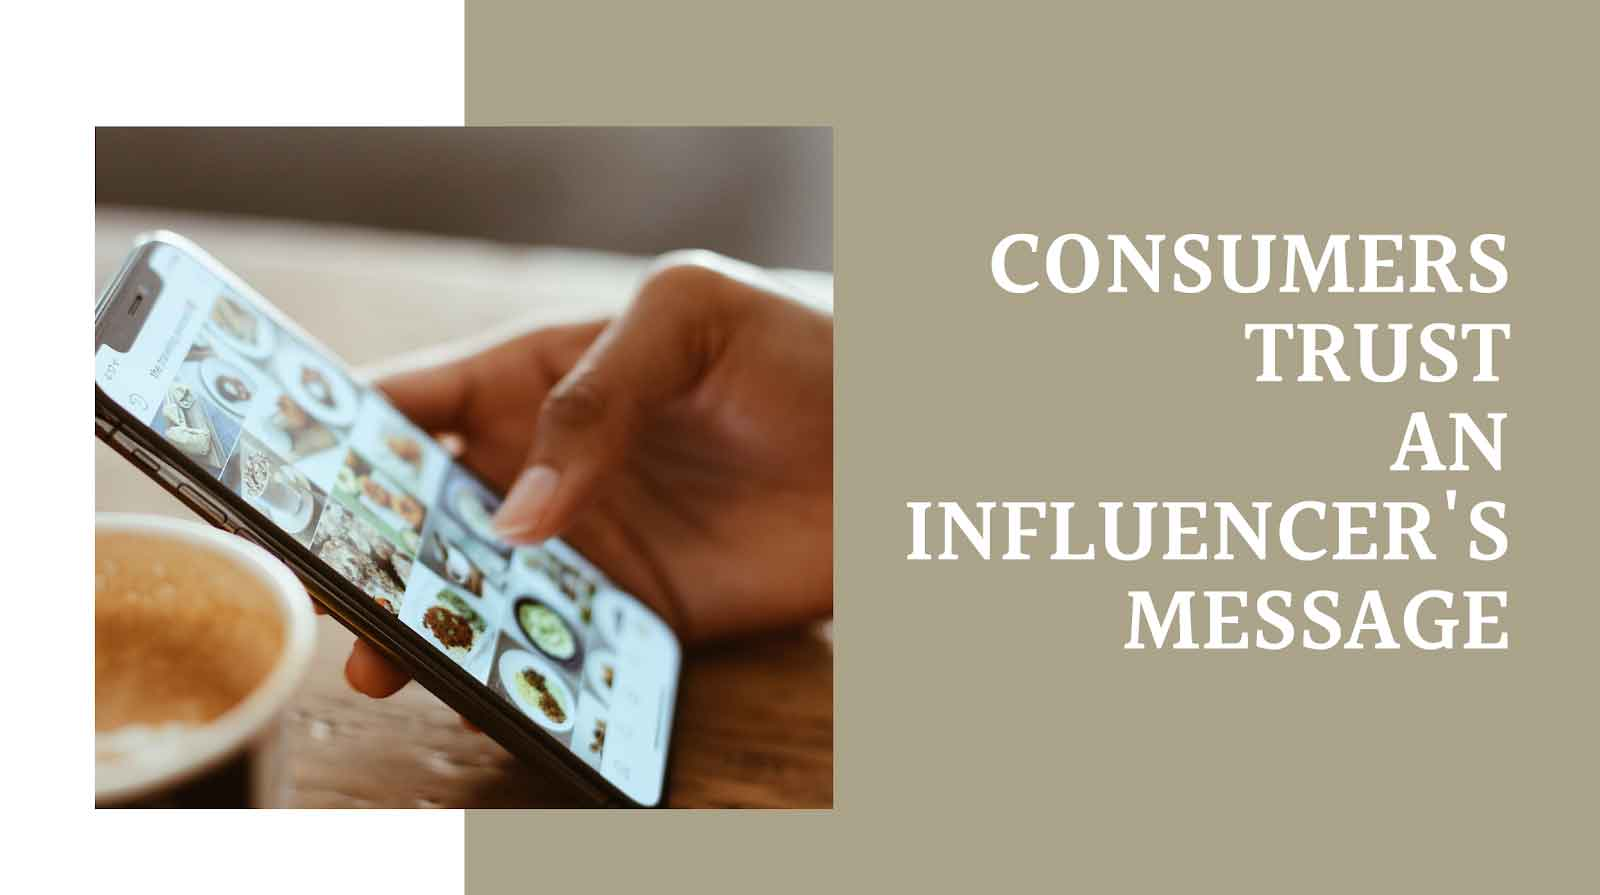 Consumers Trust An Influencers's Message